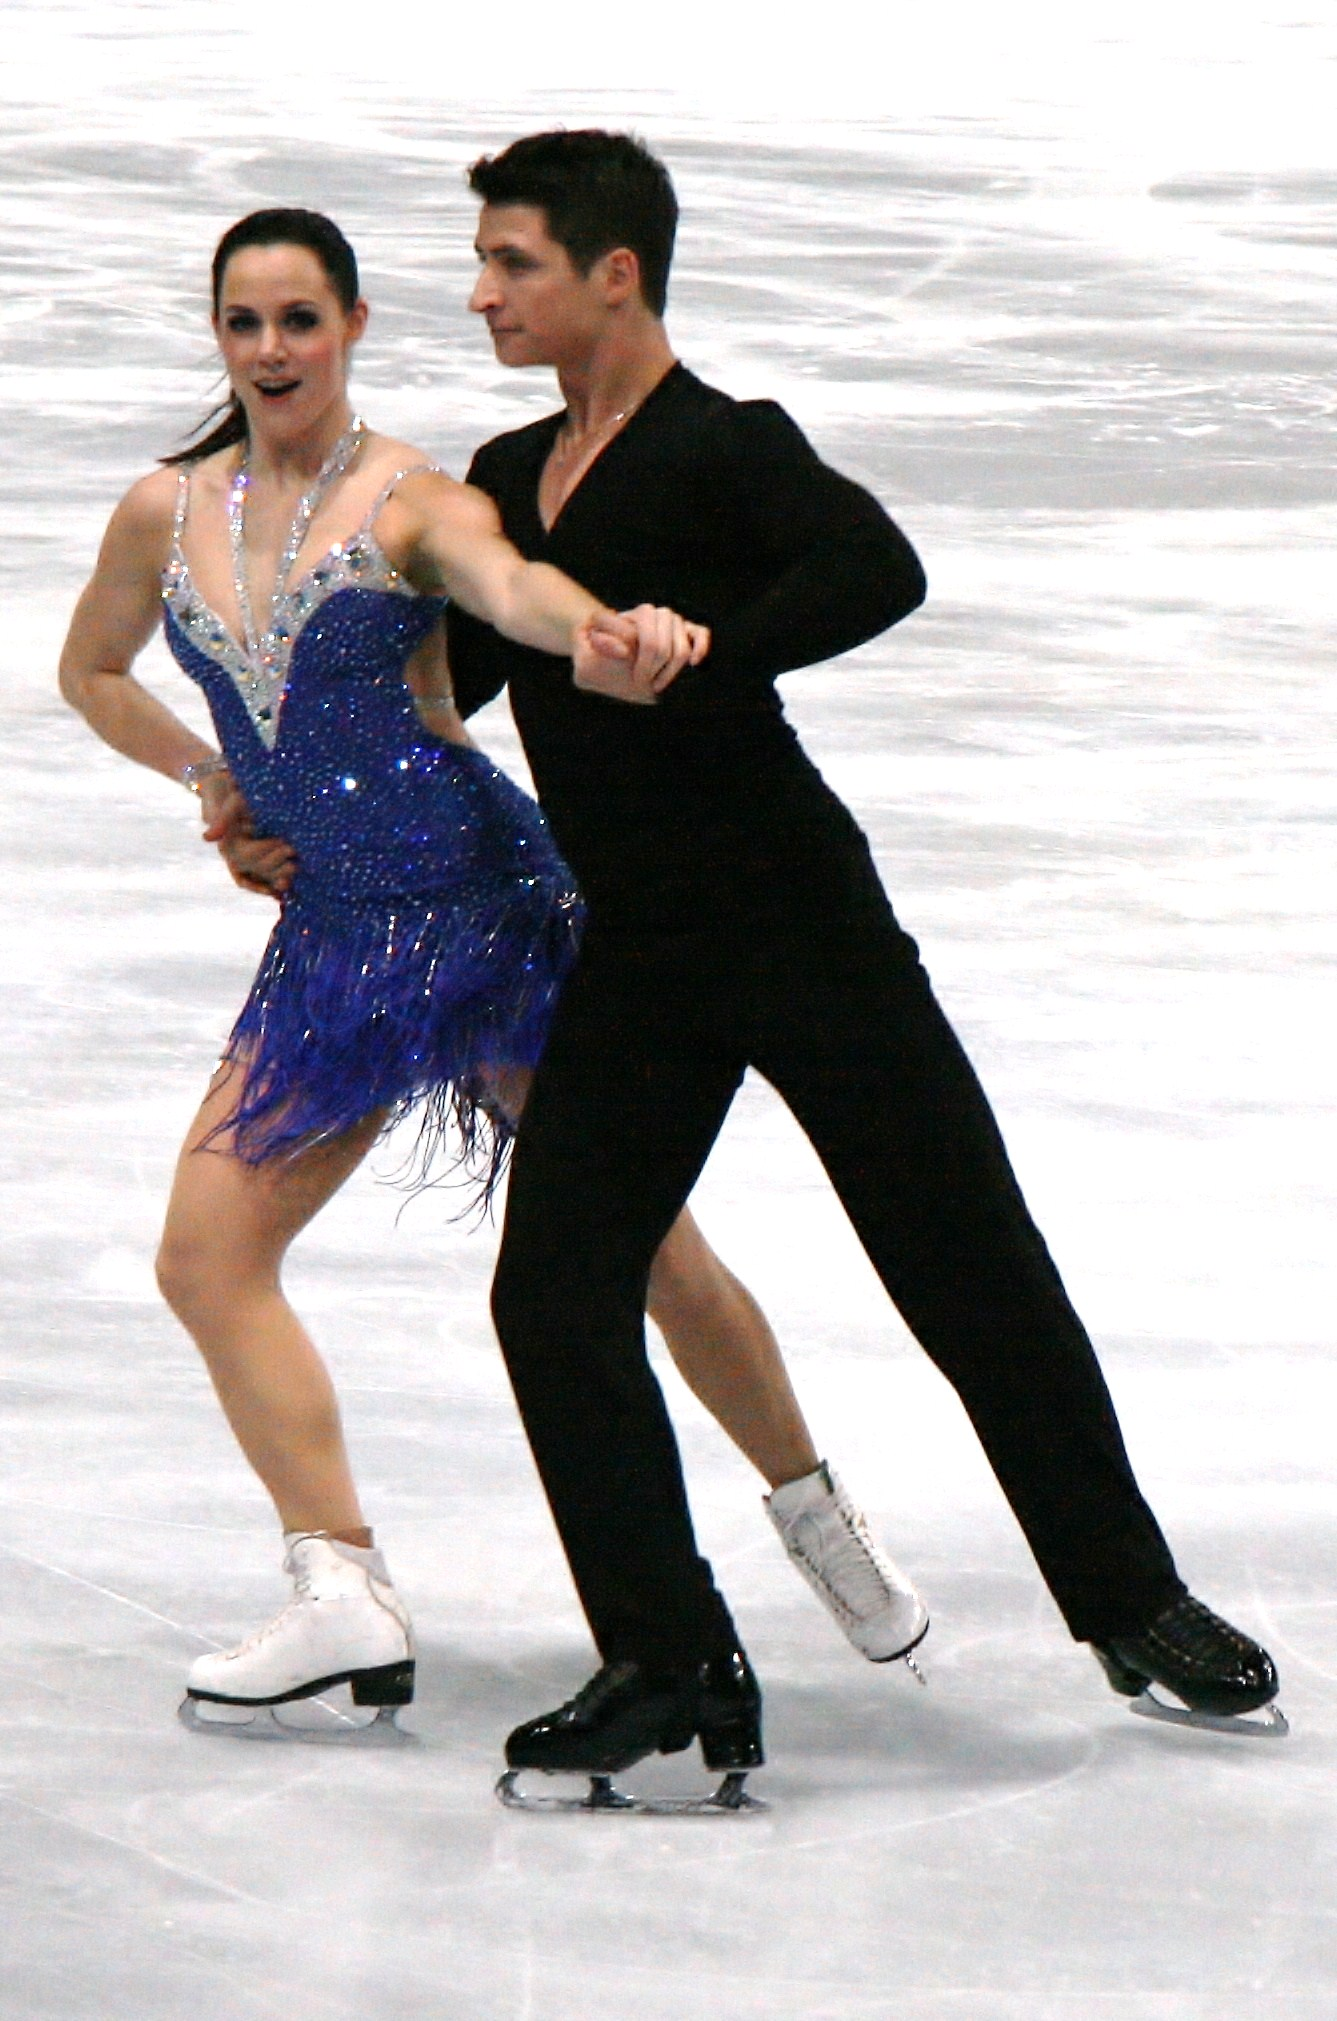 file2011 teb short 008 tessa virtue scott moirjpg wikimedia commons